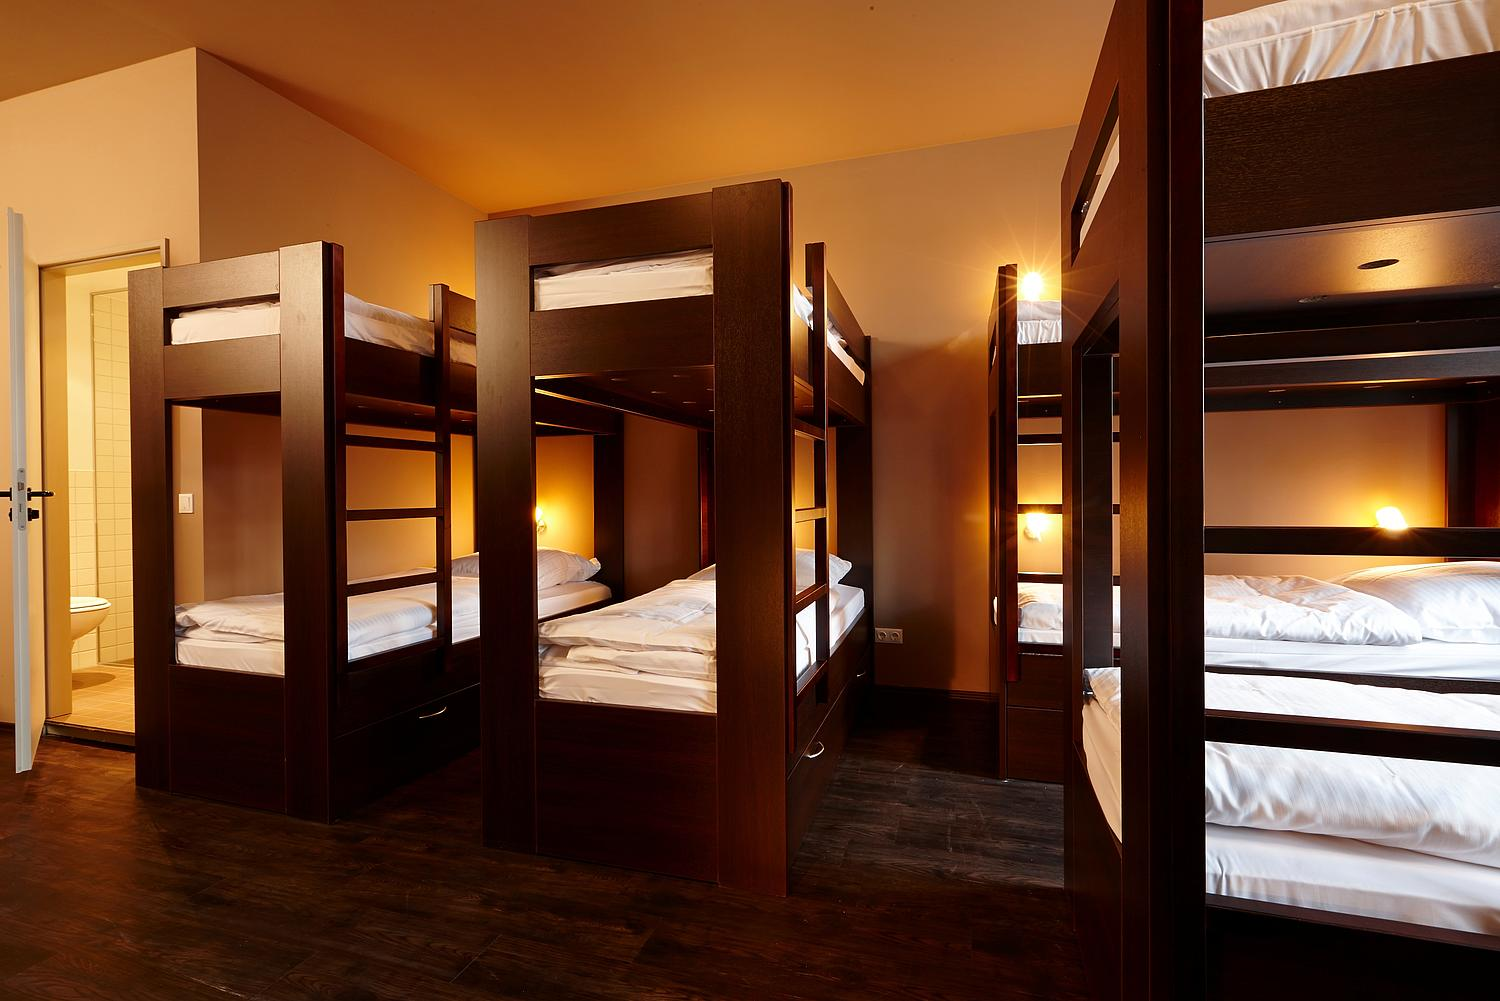 Multi Bed Room Smart Stay Hotels Smart Stay